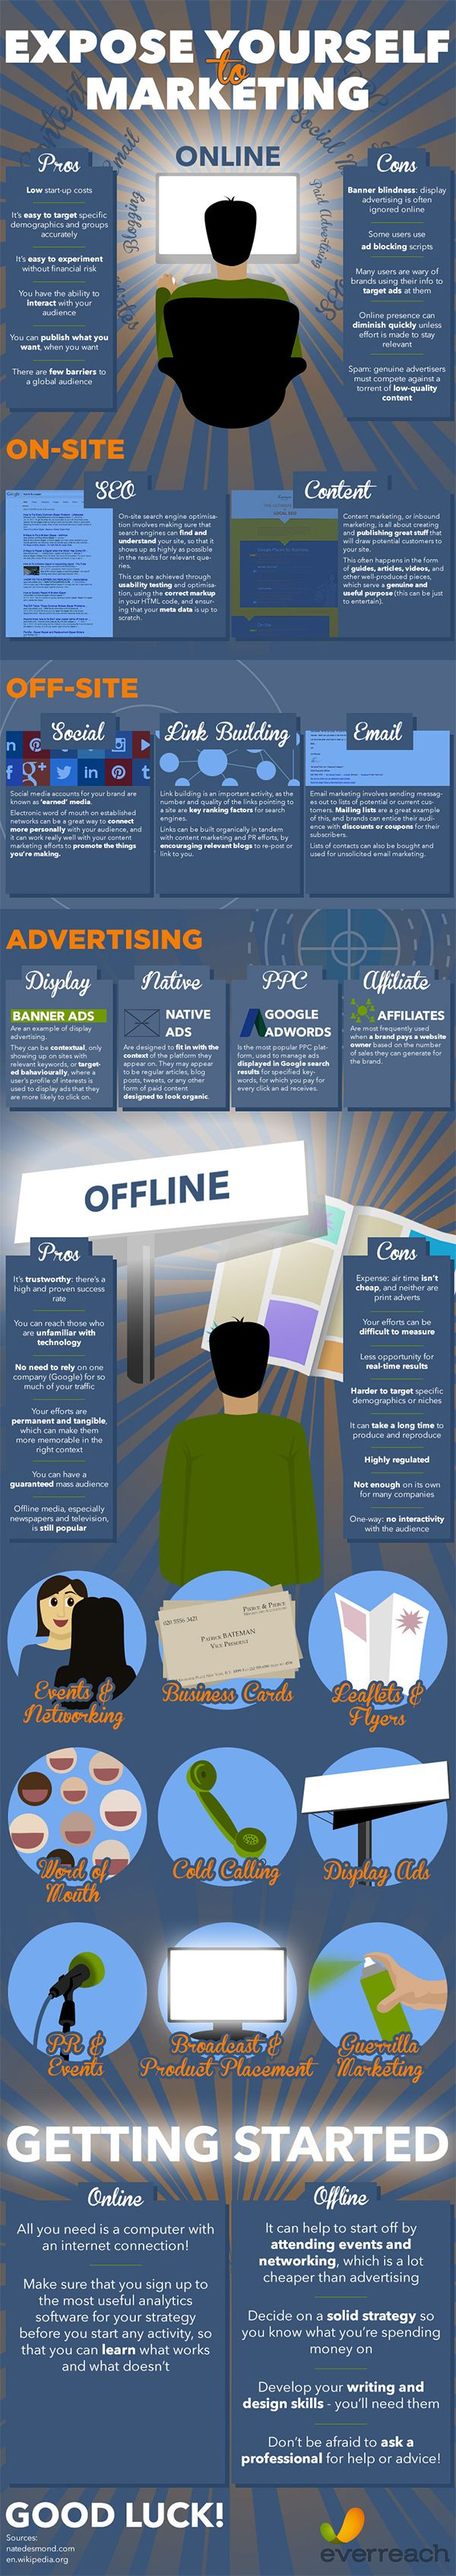 Marketing Basics 18 Online and Offline Tactics Every Business Should Use http://www.intelisystems.com